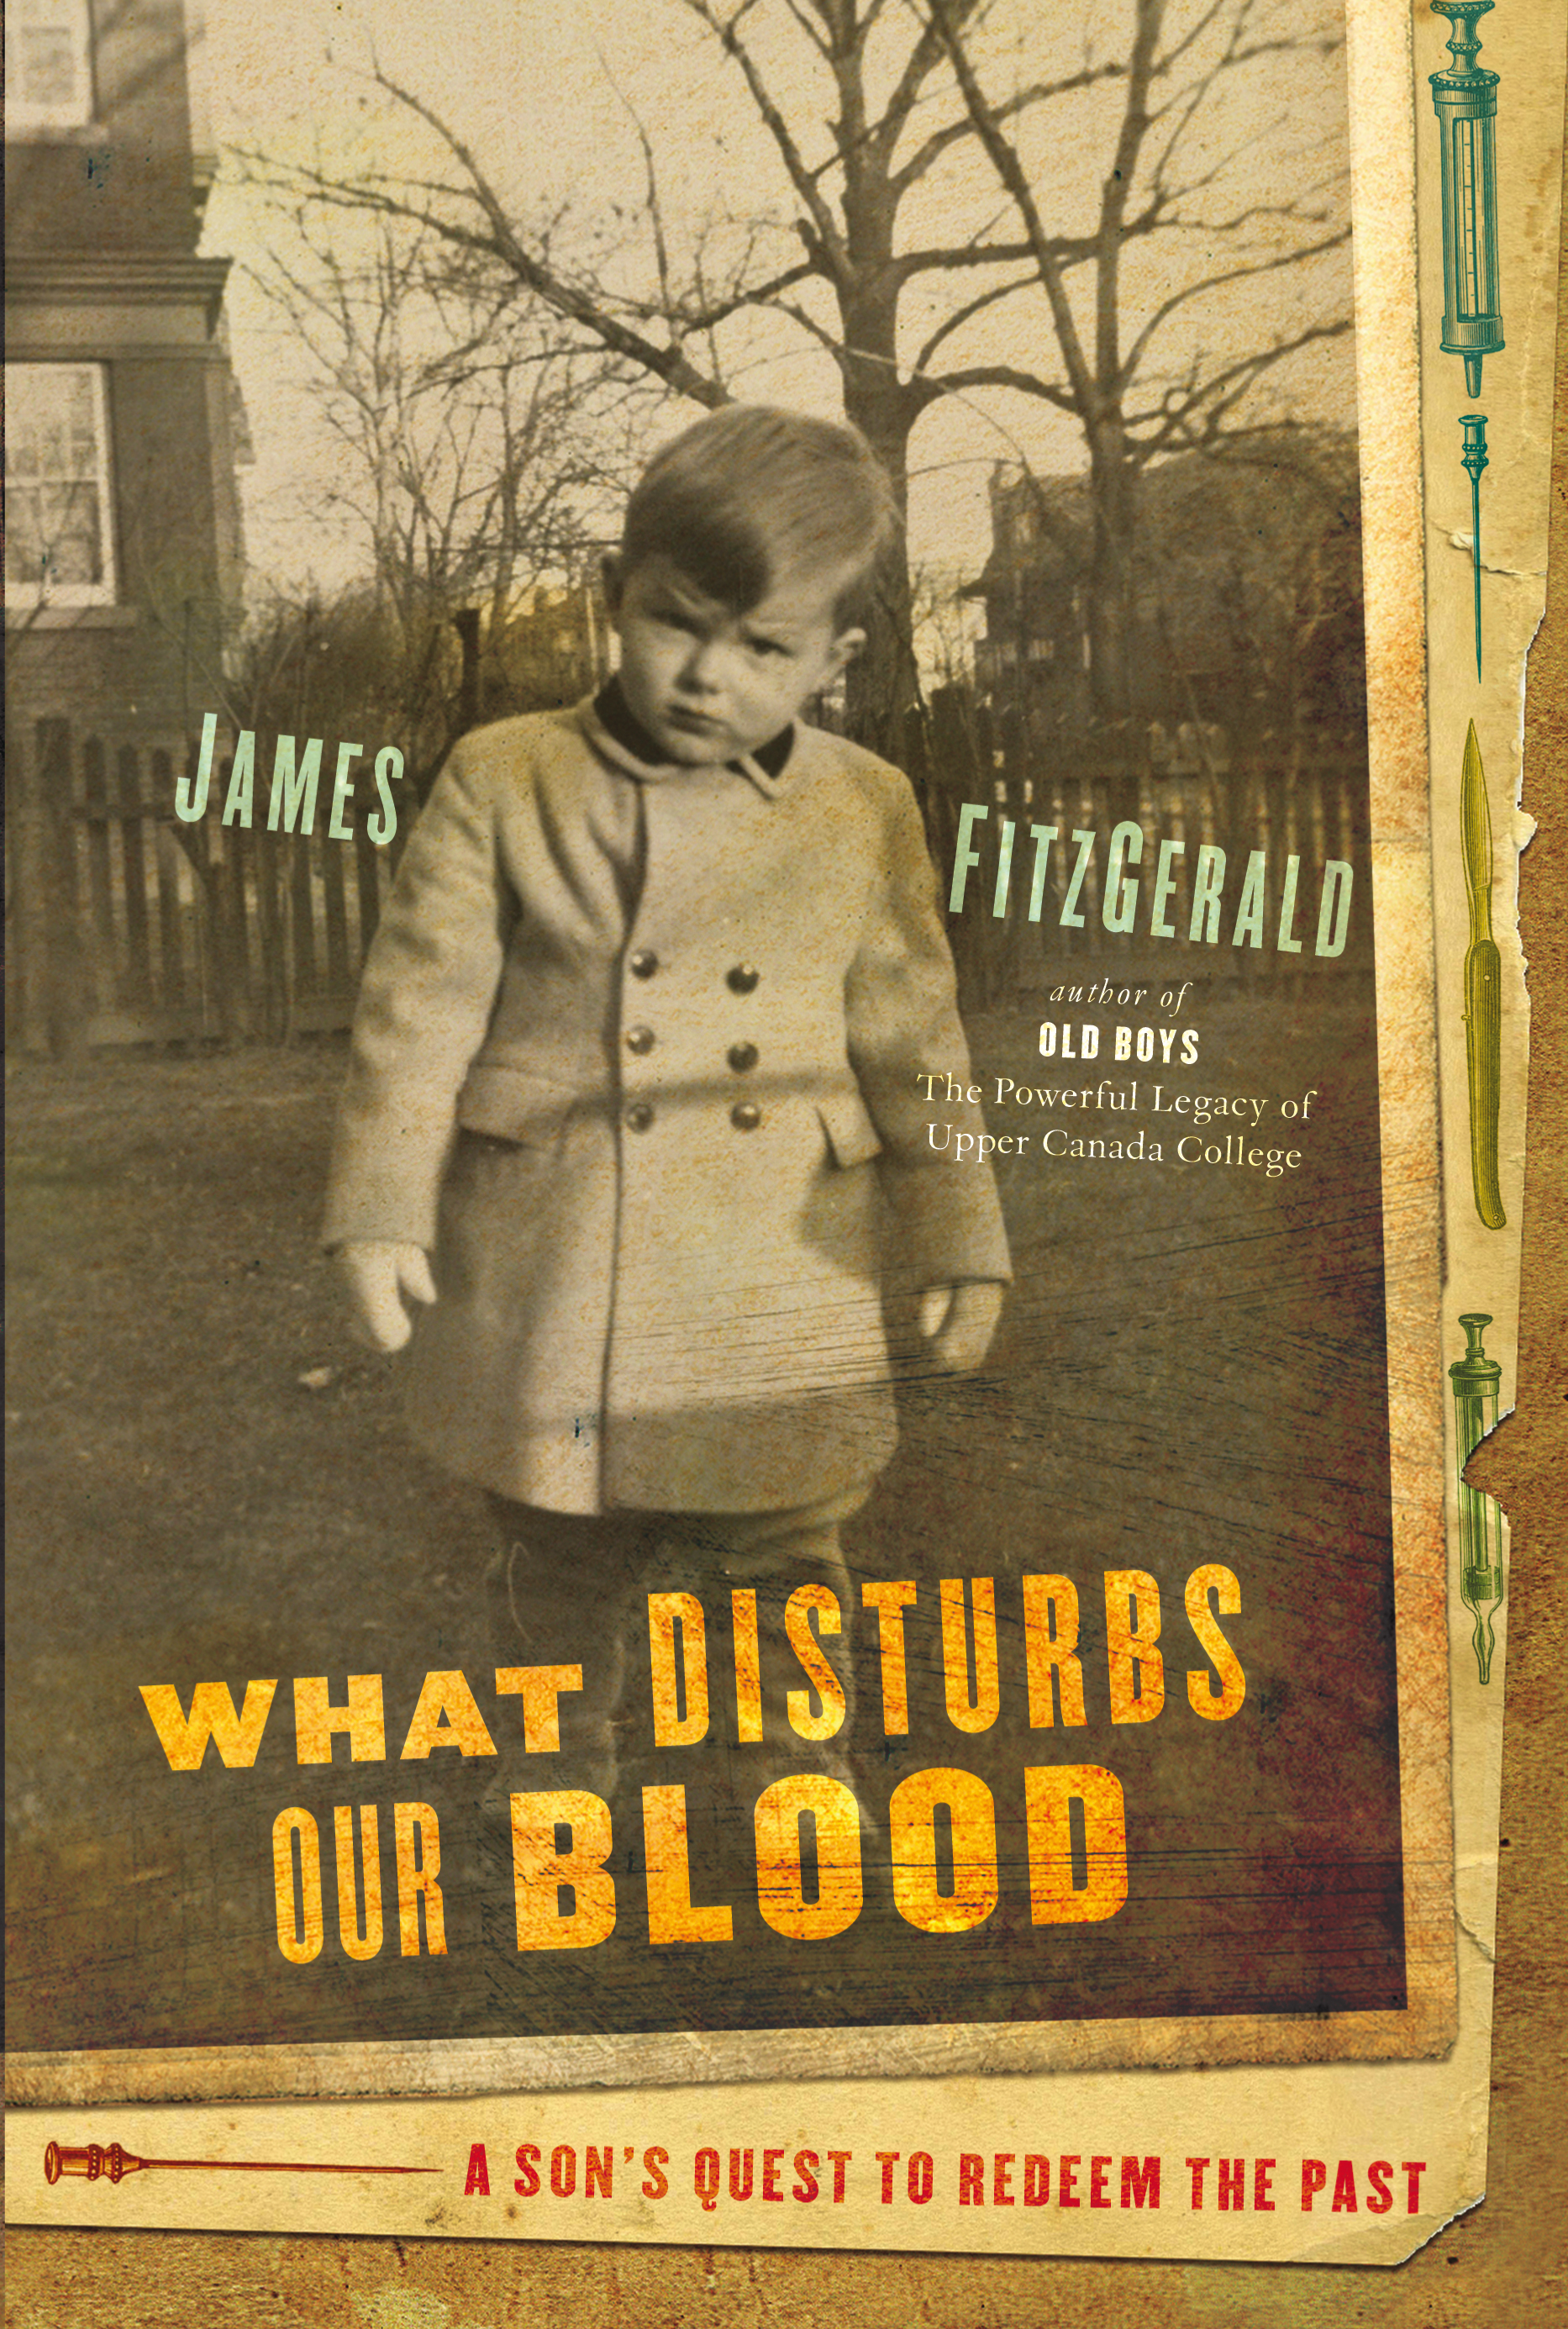 What Disturbs Our Blood - A withdrawn boy is born into the Toronto home of his late grandfather, a brilliant yet tormented pathologist of Irish blood. Like his friends Banting and Best, Dr. John Gerald FitzGerald was a Canadian hero. His vaccines saved untold lives, and he transformed the idea of public health in Canada and the world. What so darkened his reputation that his memory has been all but erased?As the boy watches his own father, also an eminent doctor, plunge into a suicidal psychosis, he intuits some unspeakable secret buried deep in the family unconscious. Growing into manhood, he knows that he must stalk an ancient curse before it stalks him. To set himself free, he must break the silence and put words to the page. His future lies in the past.